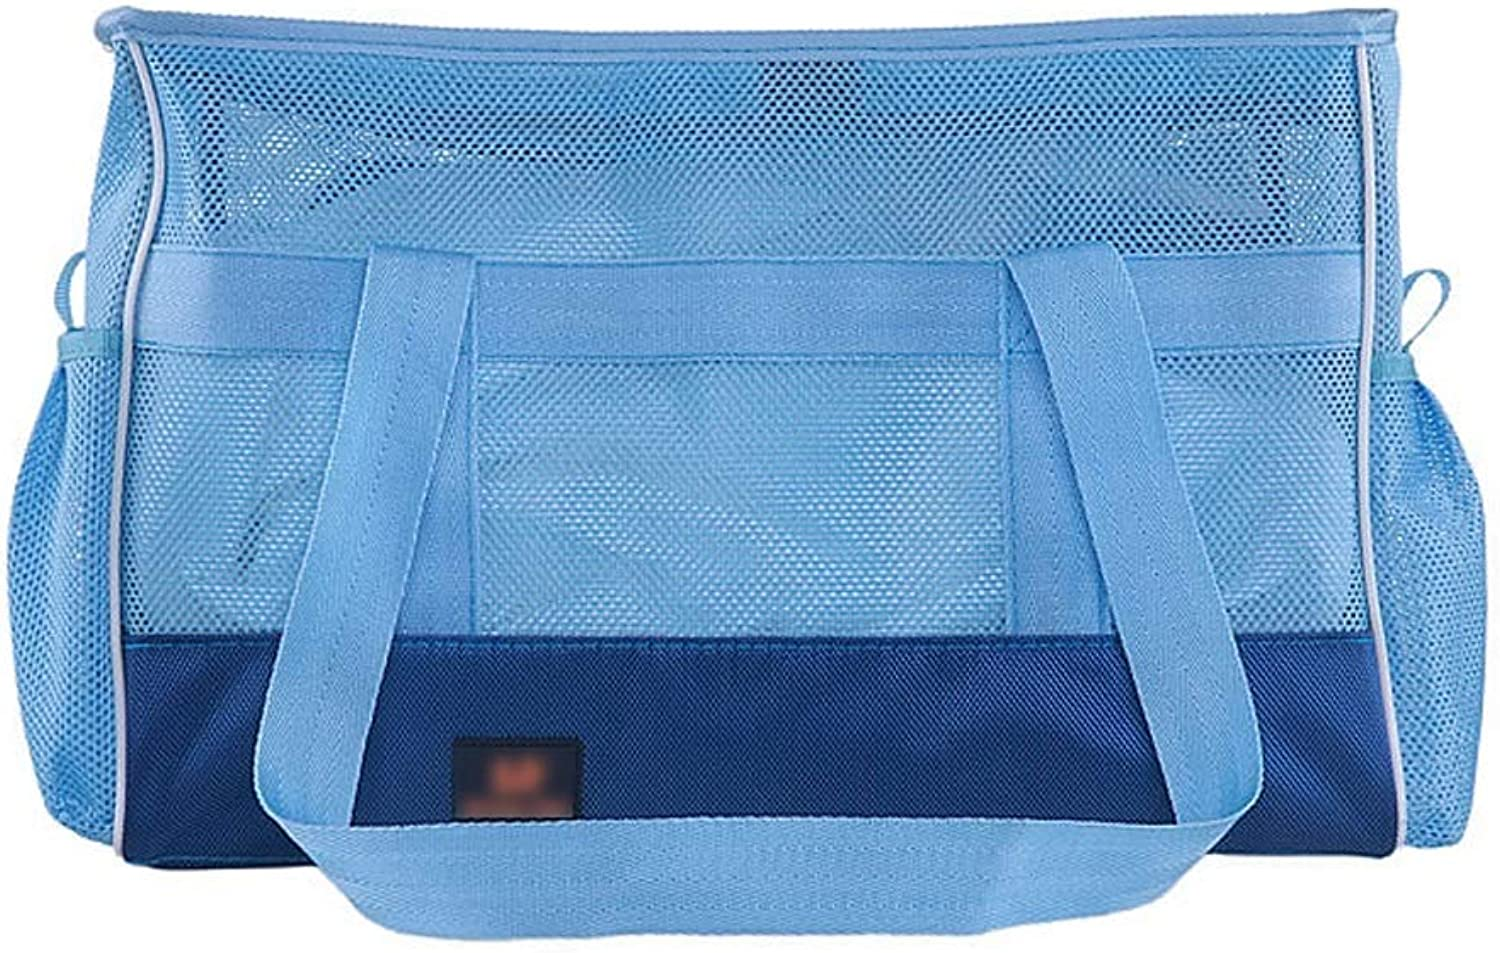 Pet Travel Bag Pet Handbag bluee 1680D Nylon Breathable Mesh Portable Folding Dualuse Dog Cat Outdoor Shoulder Bag Travel Carrier (Size   50  22  33CM)